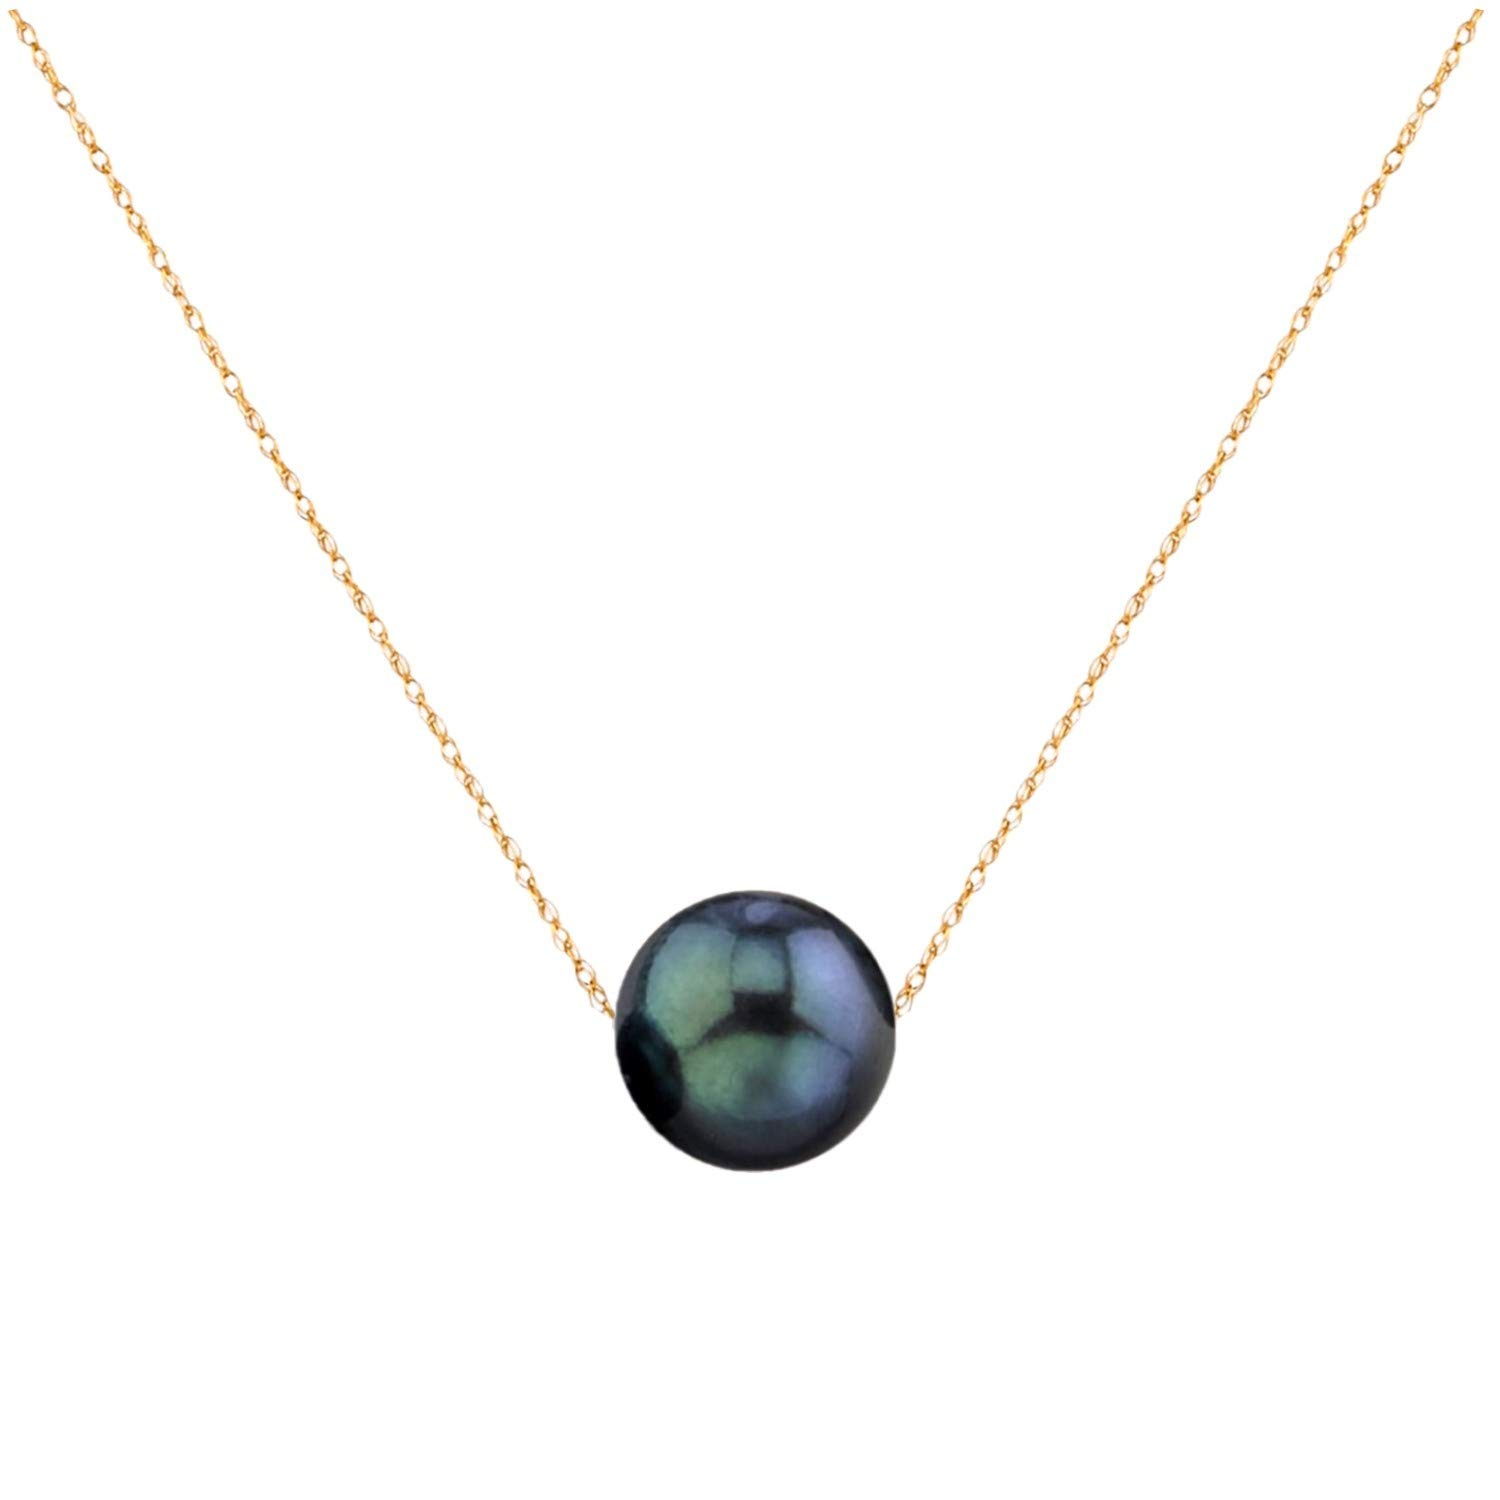 14K Gold 10-11mm Freshwater Cultured Floating Pearl Tin Cup Chain Necklace Jewelry for Women 17'' (Black, yellow-gold)